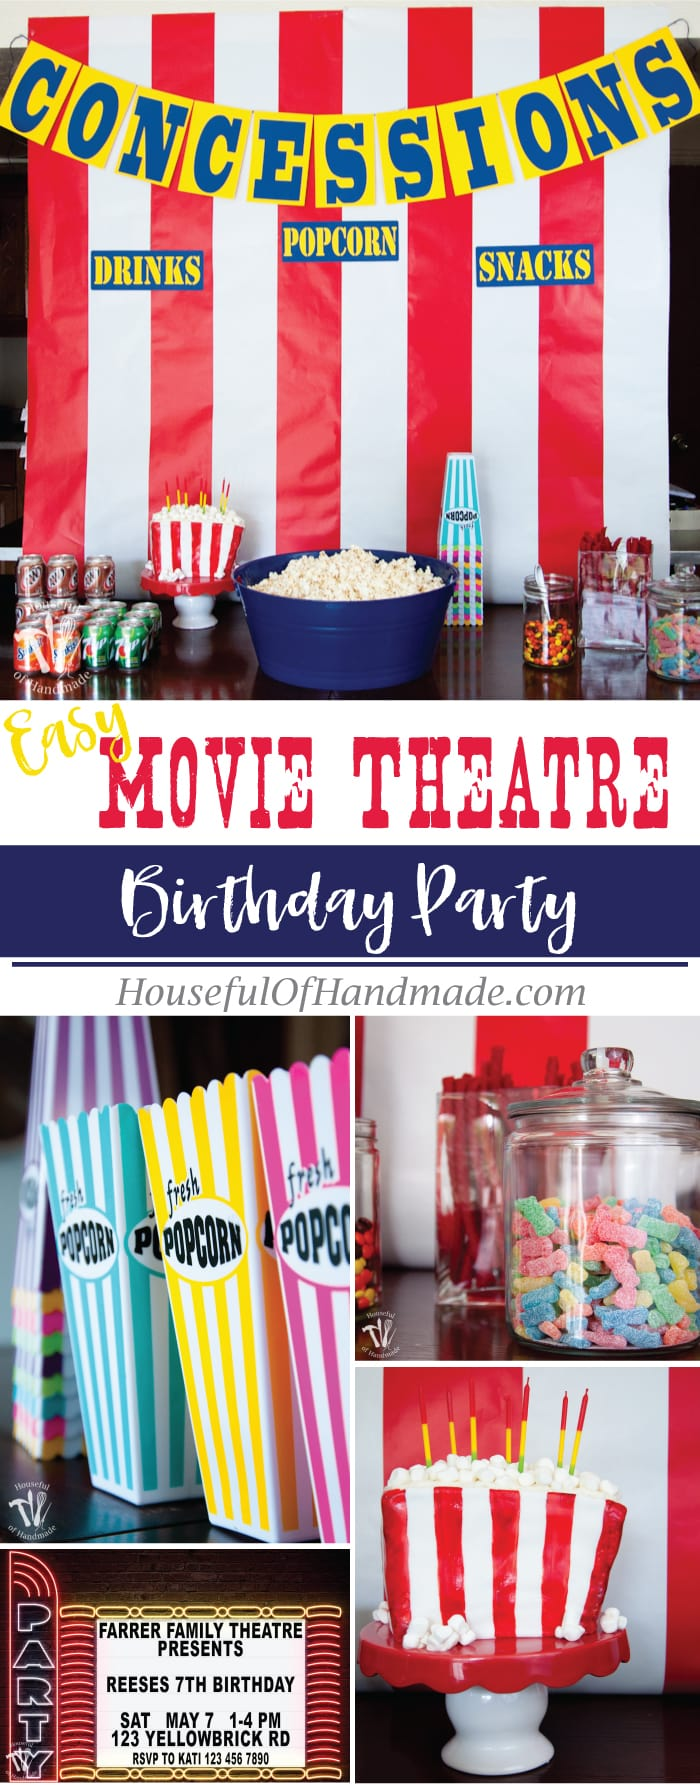 Movie Theatre Themed Birthday Party Houseful Of Handmade